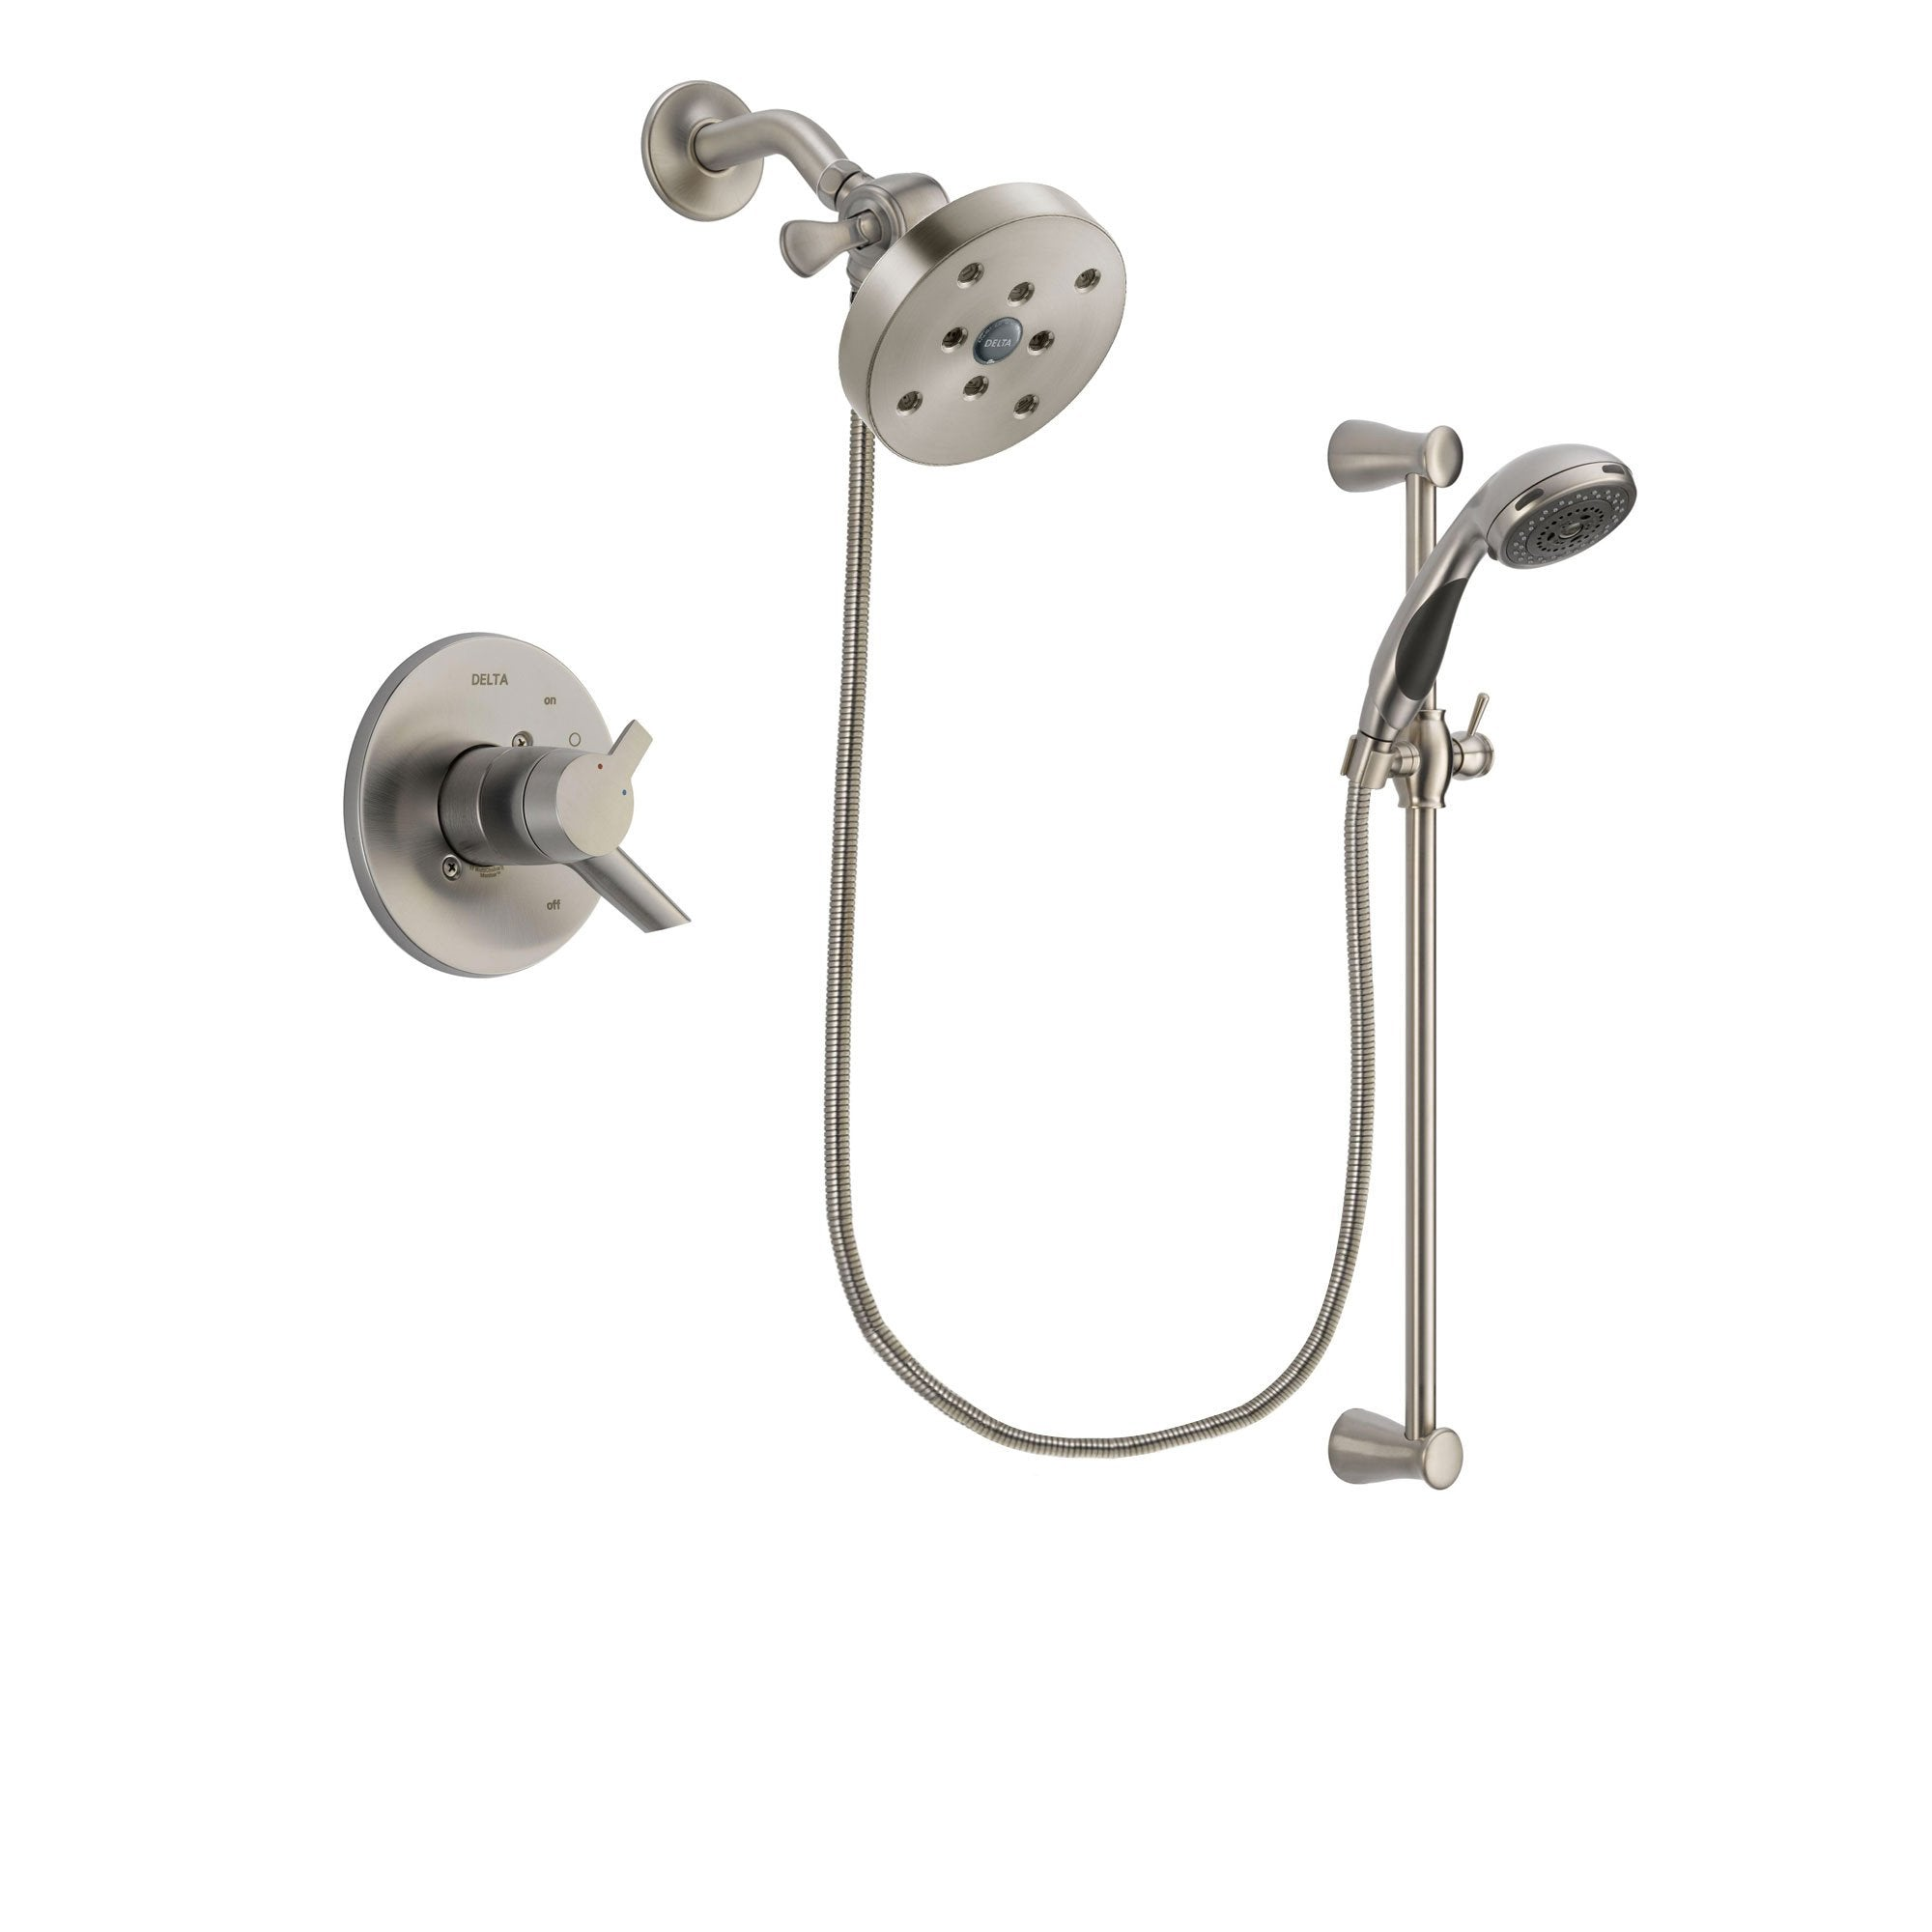 Delta Compel Stainless Steel Finish Shower Faucet System w/ Hand Spray DSP1640V